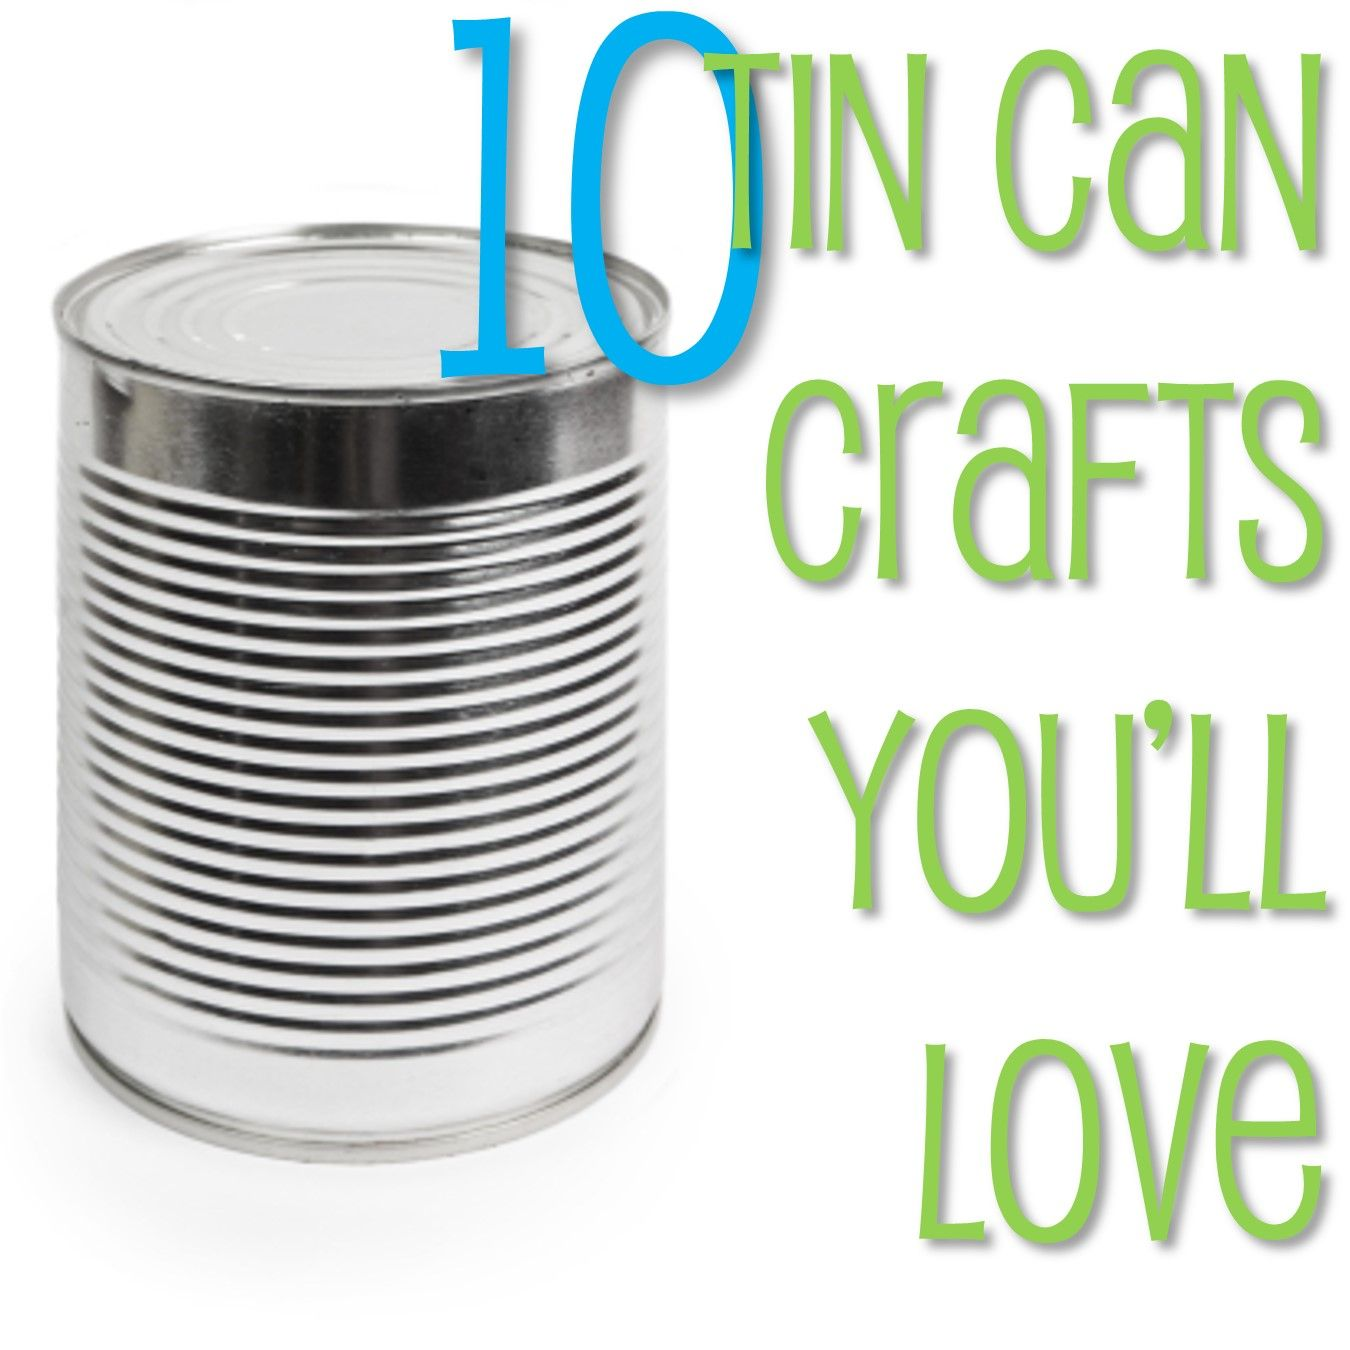 10 Tin Can Crafts You Ll Love Tin Can Crafts Can Crafts Soup Can Crafts